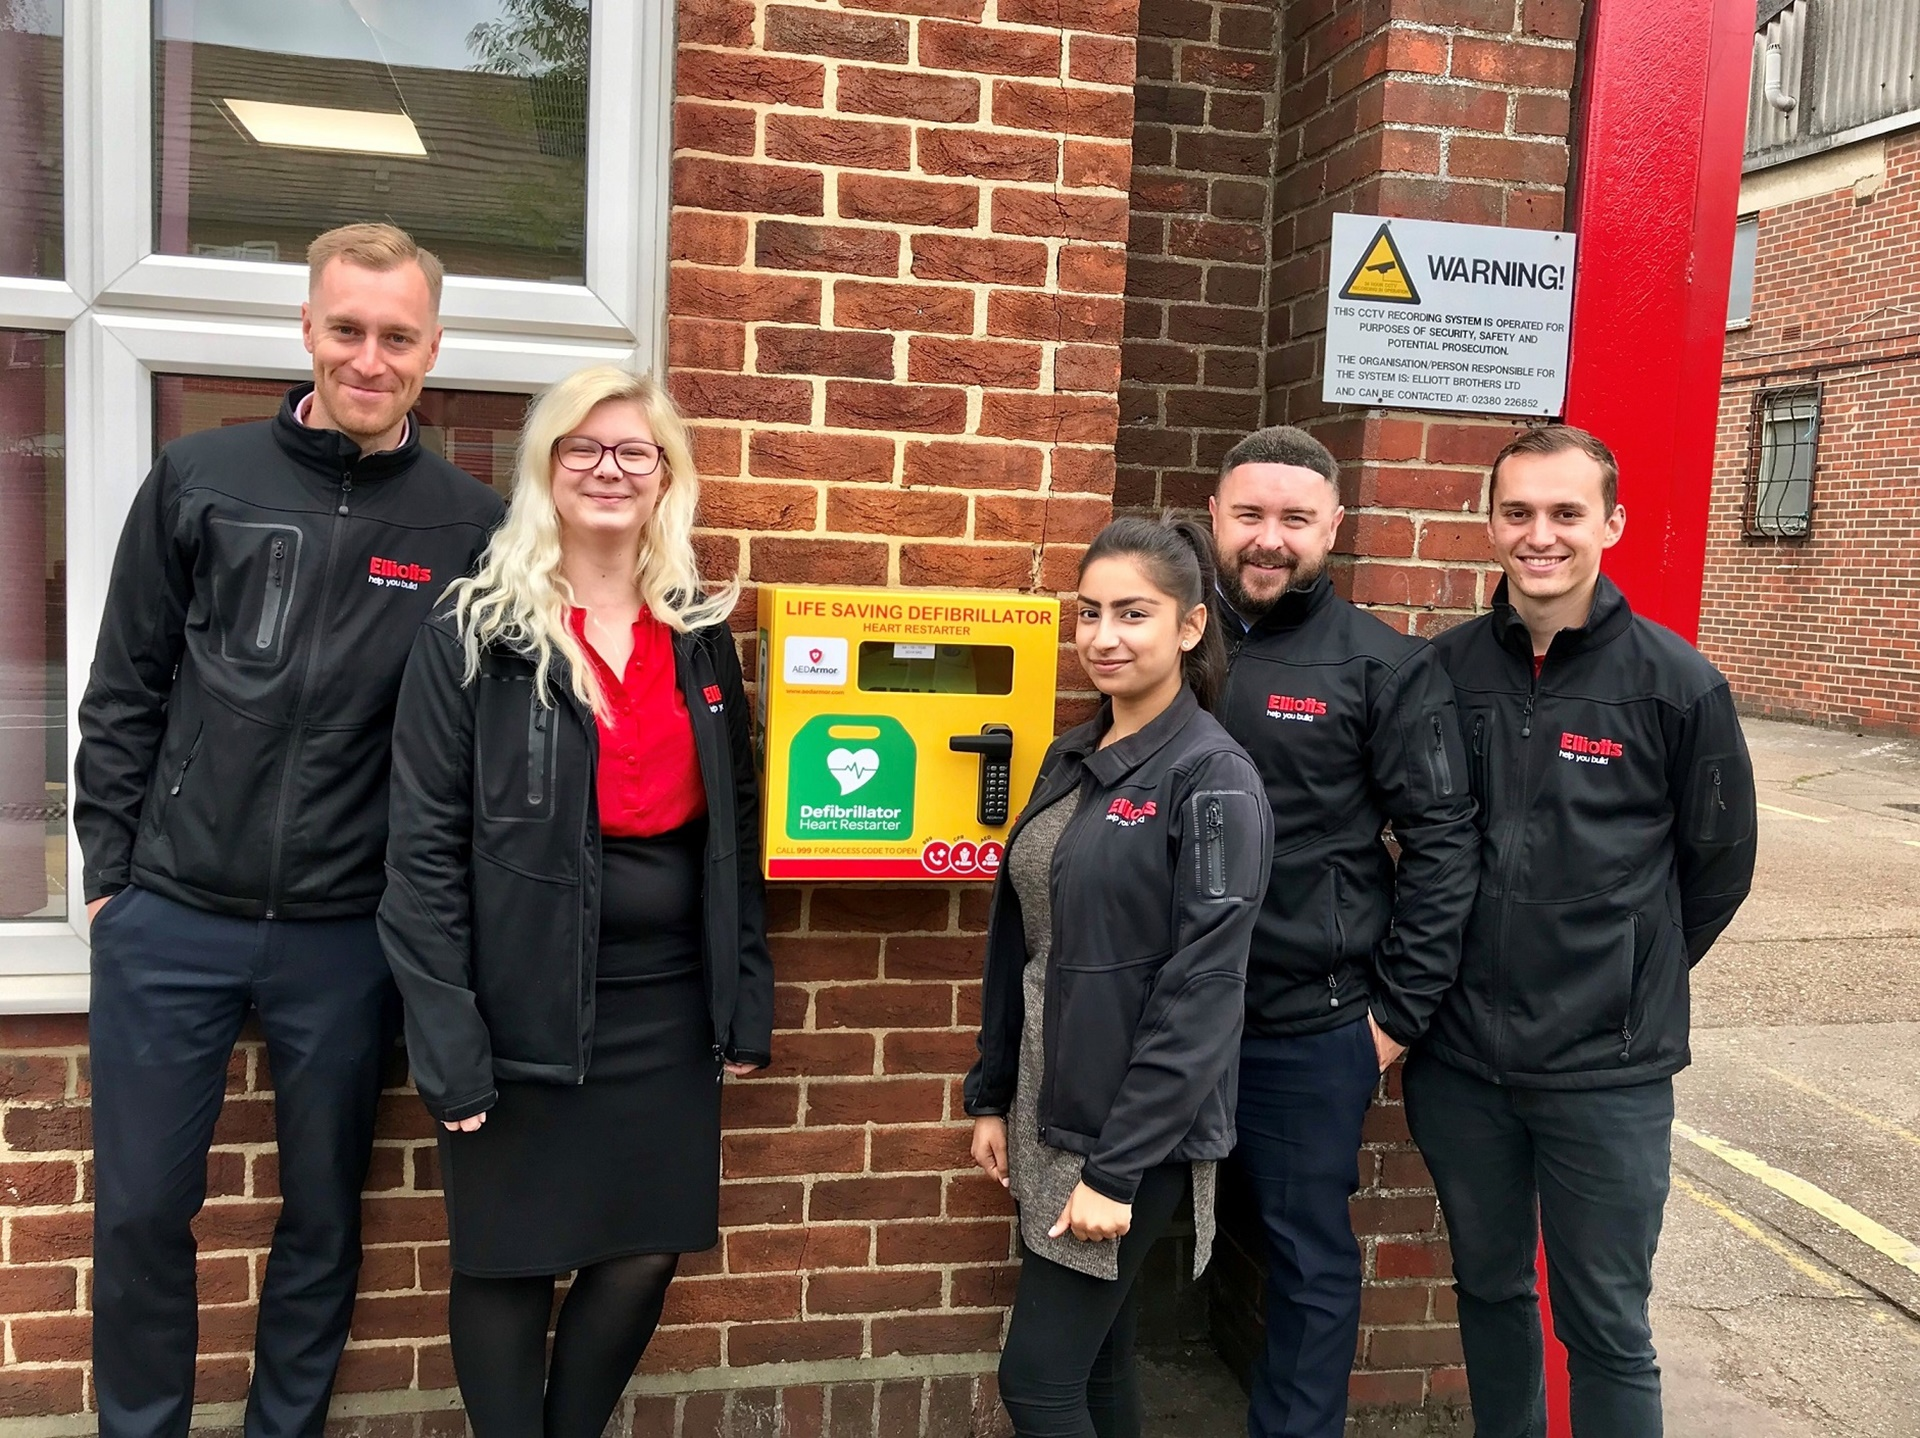 Elliotts employees with one of the new 24-hour access defibrillators